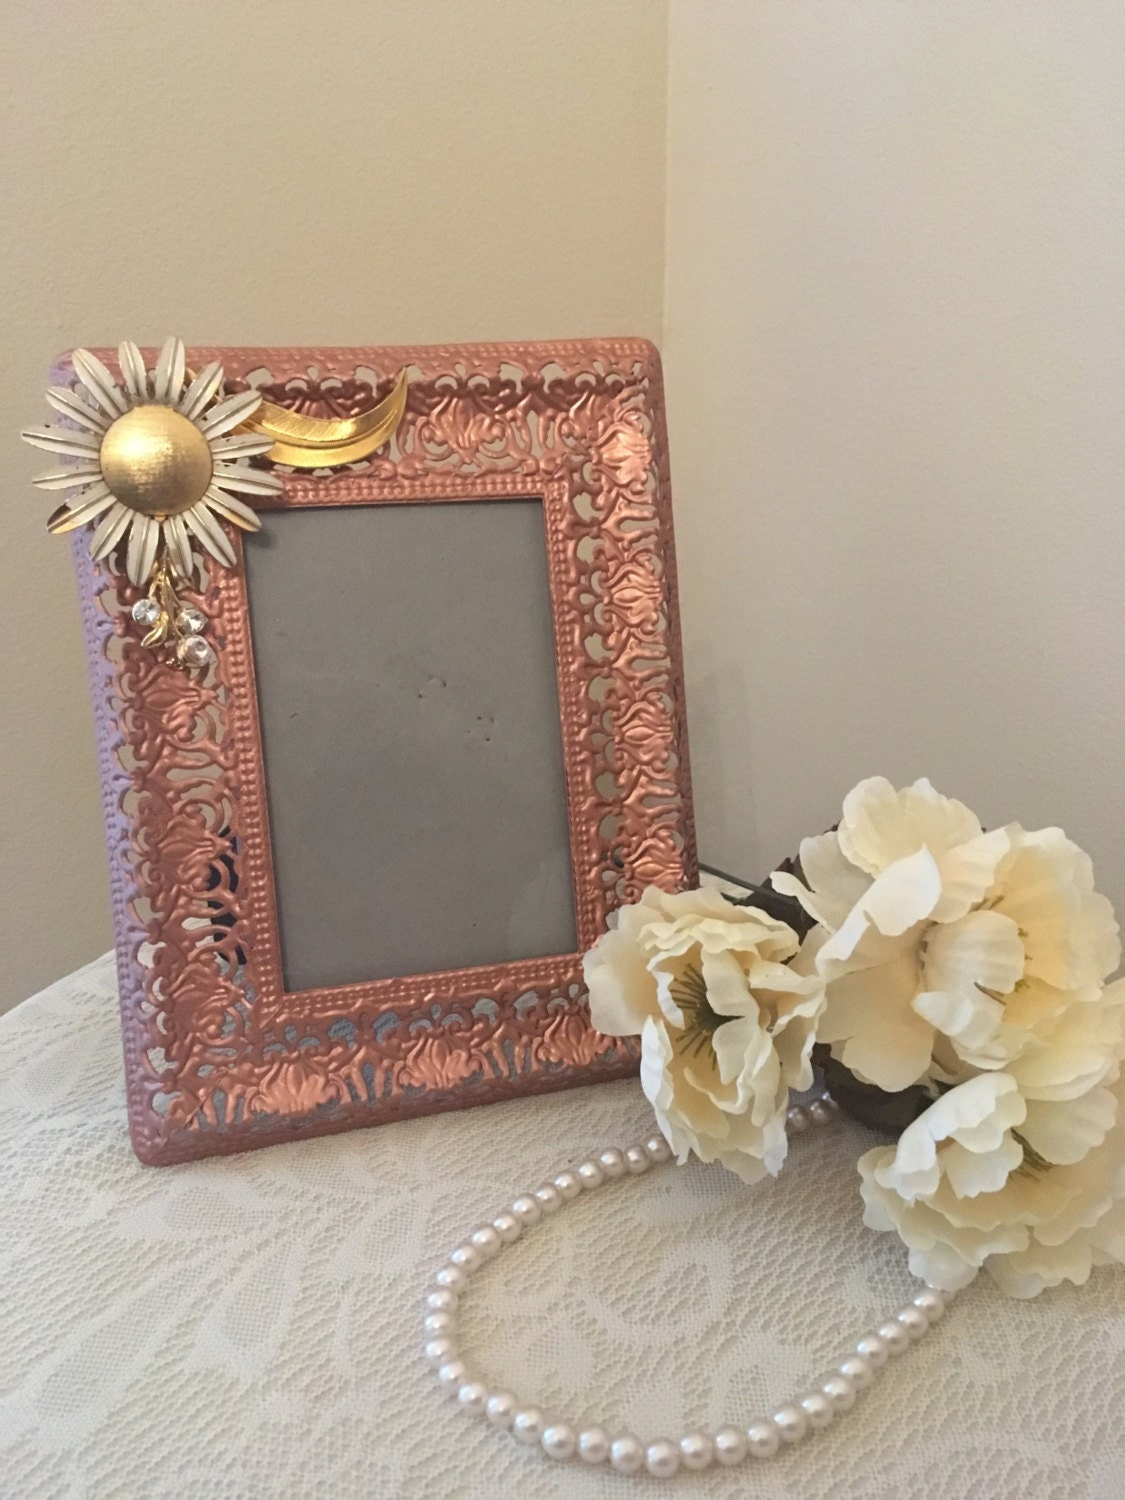 Sale rose gold home decor copper decor picture frame Home decor gold